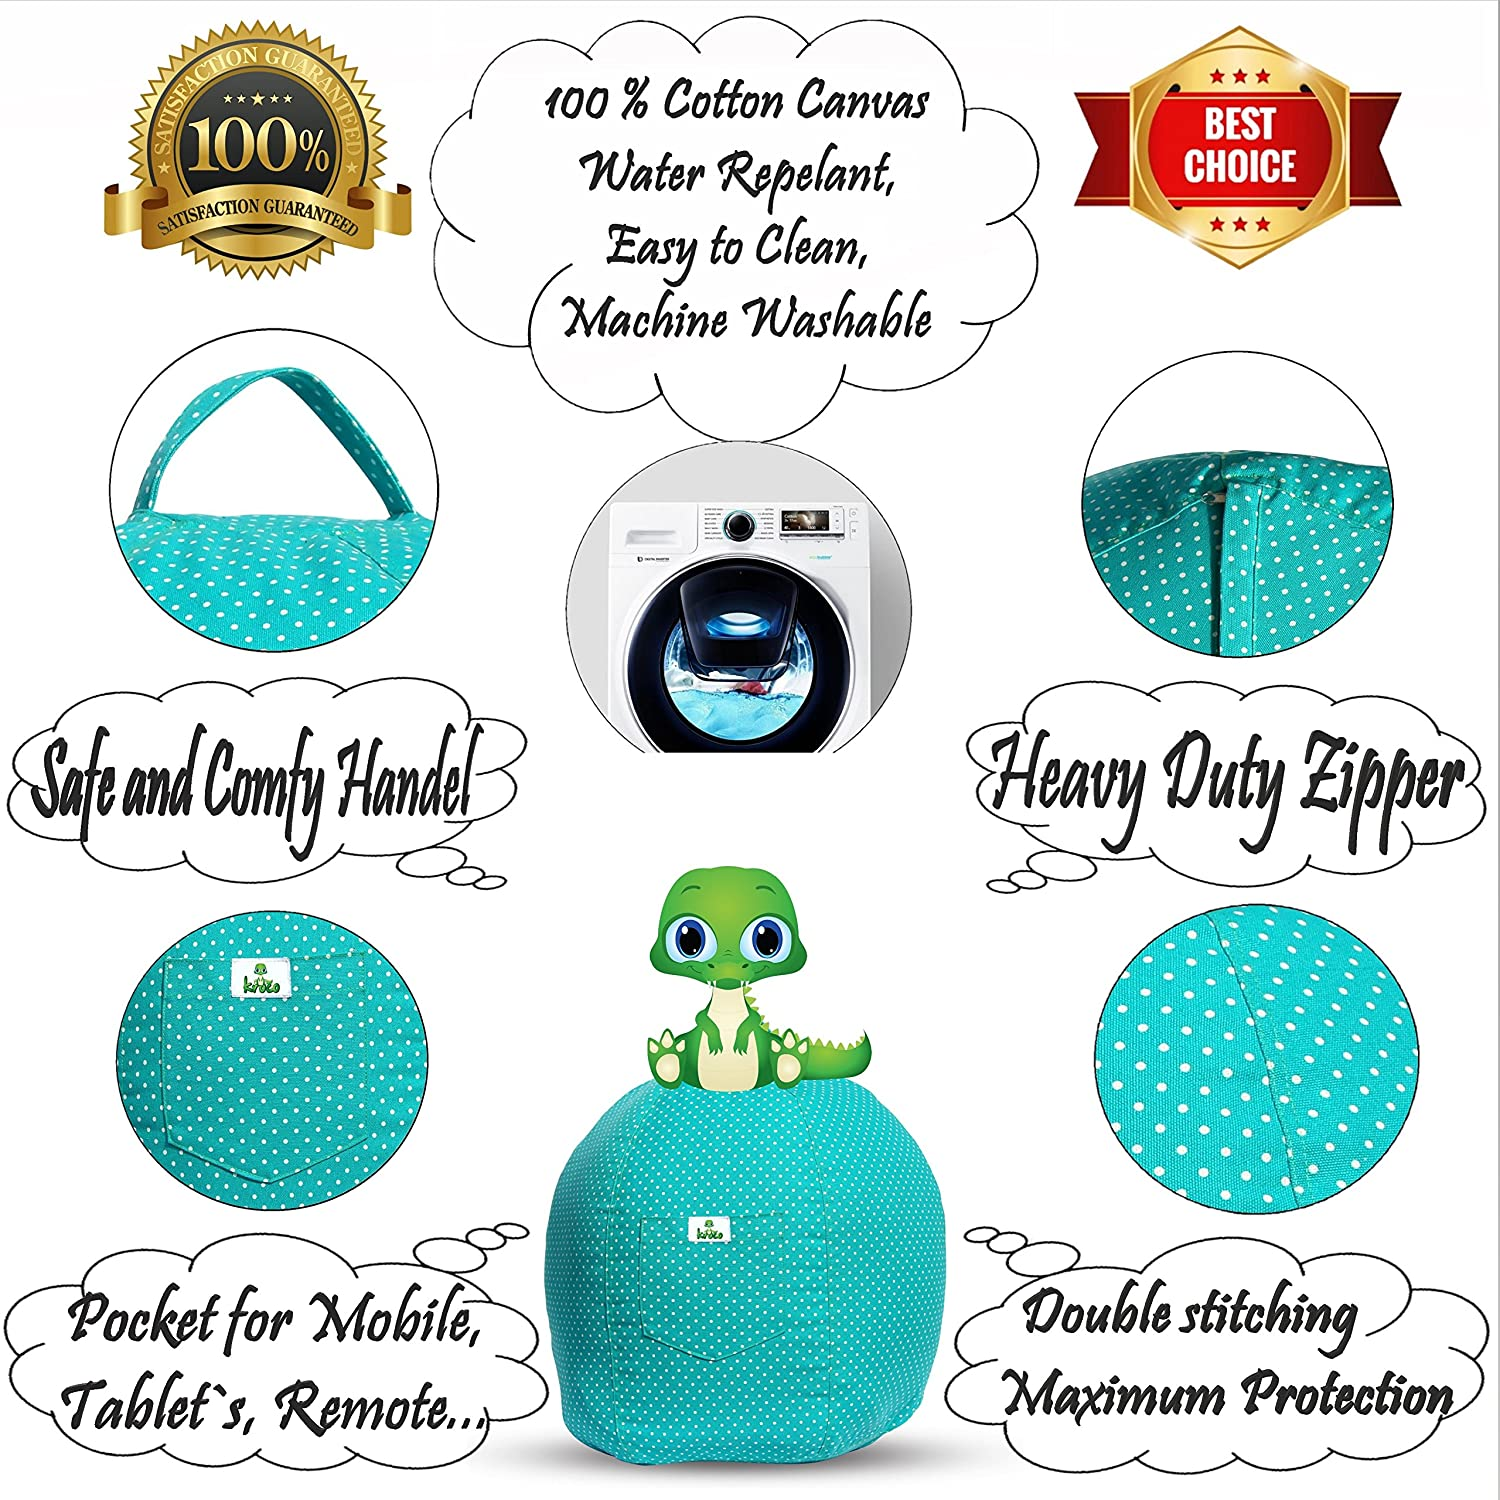 Stuffie Toy Storage Bean Bag Covers for Toddler /& Teen Stuff Toys Organizer Seat Holder for Girls /& Boys Original Bag Extra Large -Teal Kroco Stuffed Animal Storage Bean Bag Chair for Kids Room